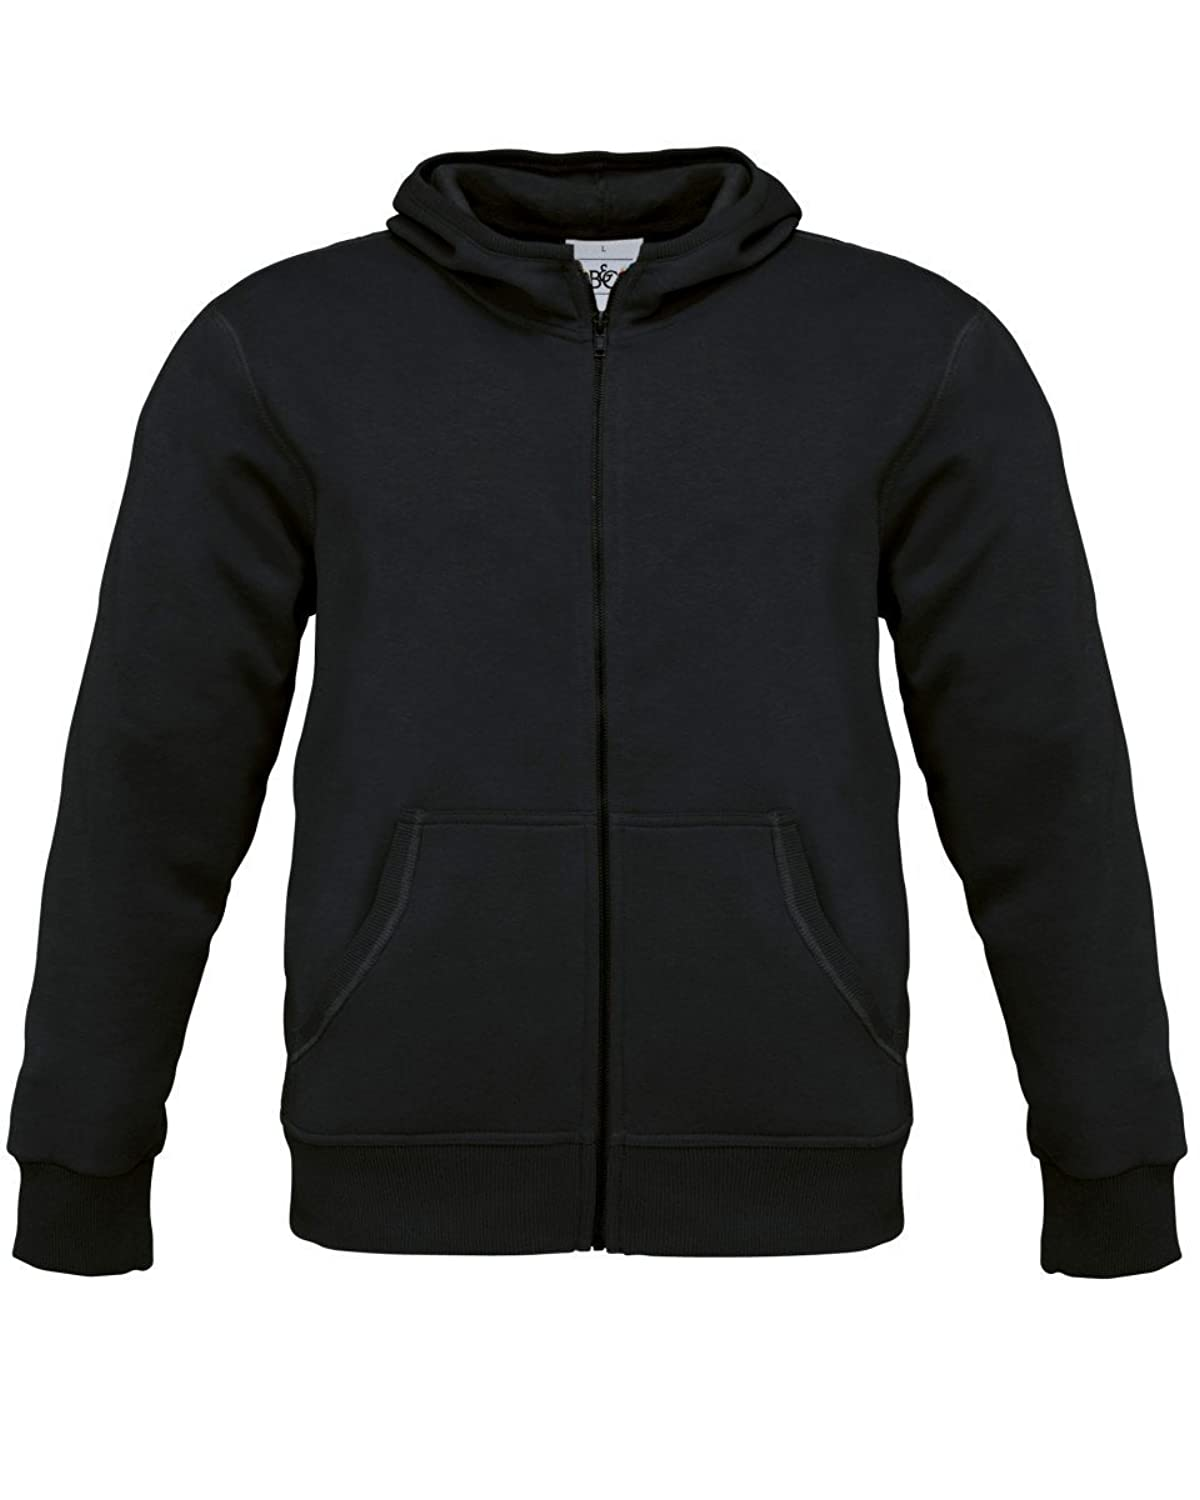 B&C Collection Monster Mens Zip Up Hoodie Hooded Sweatshirt Black M